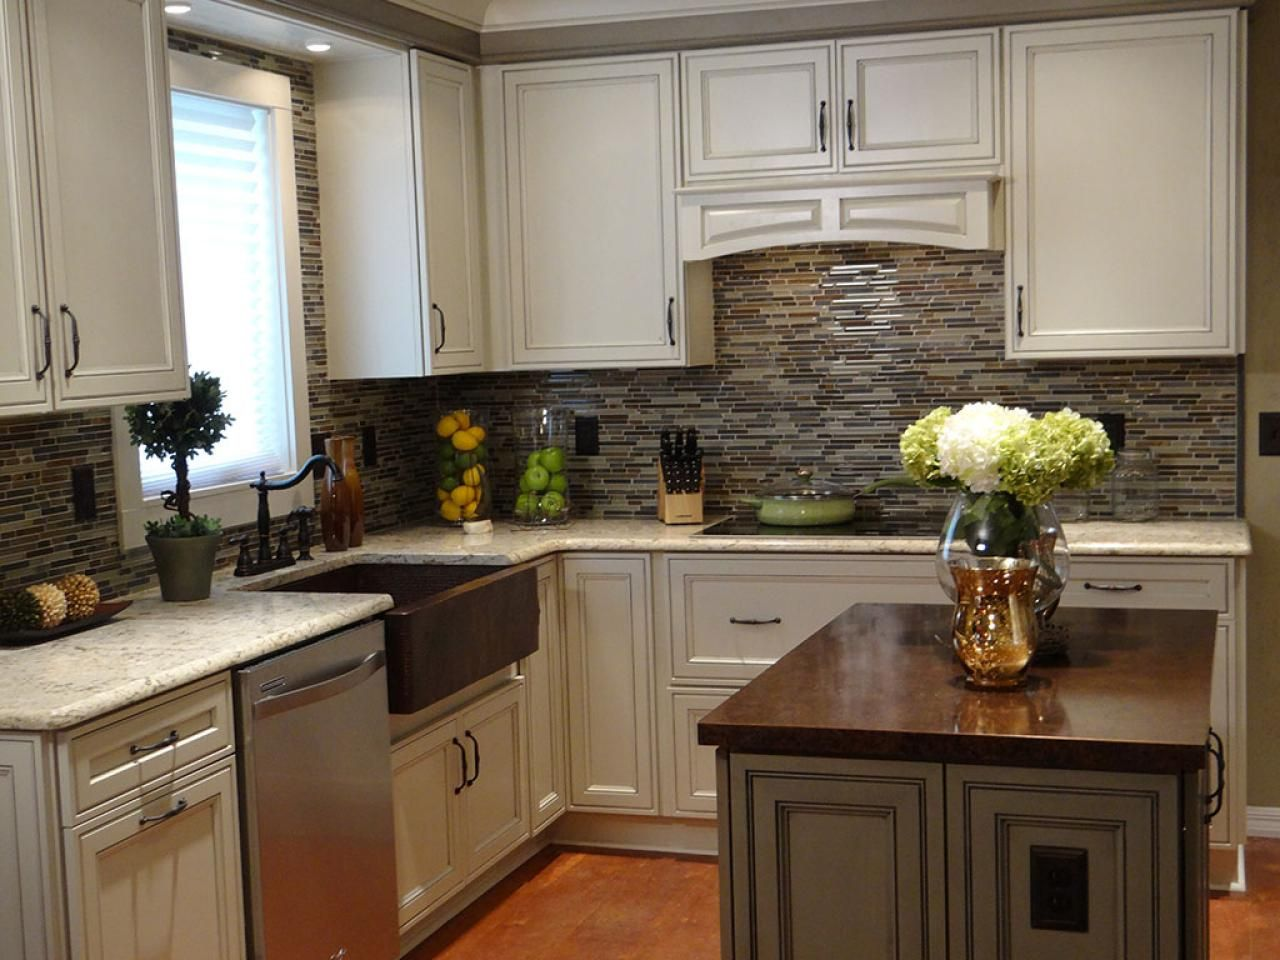 Small Kitchen Remodel Ideas 20 small kitchen makeovershgtv hosts | small kitchen makeovers